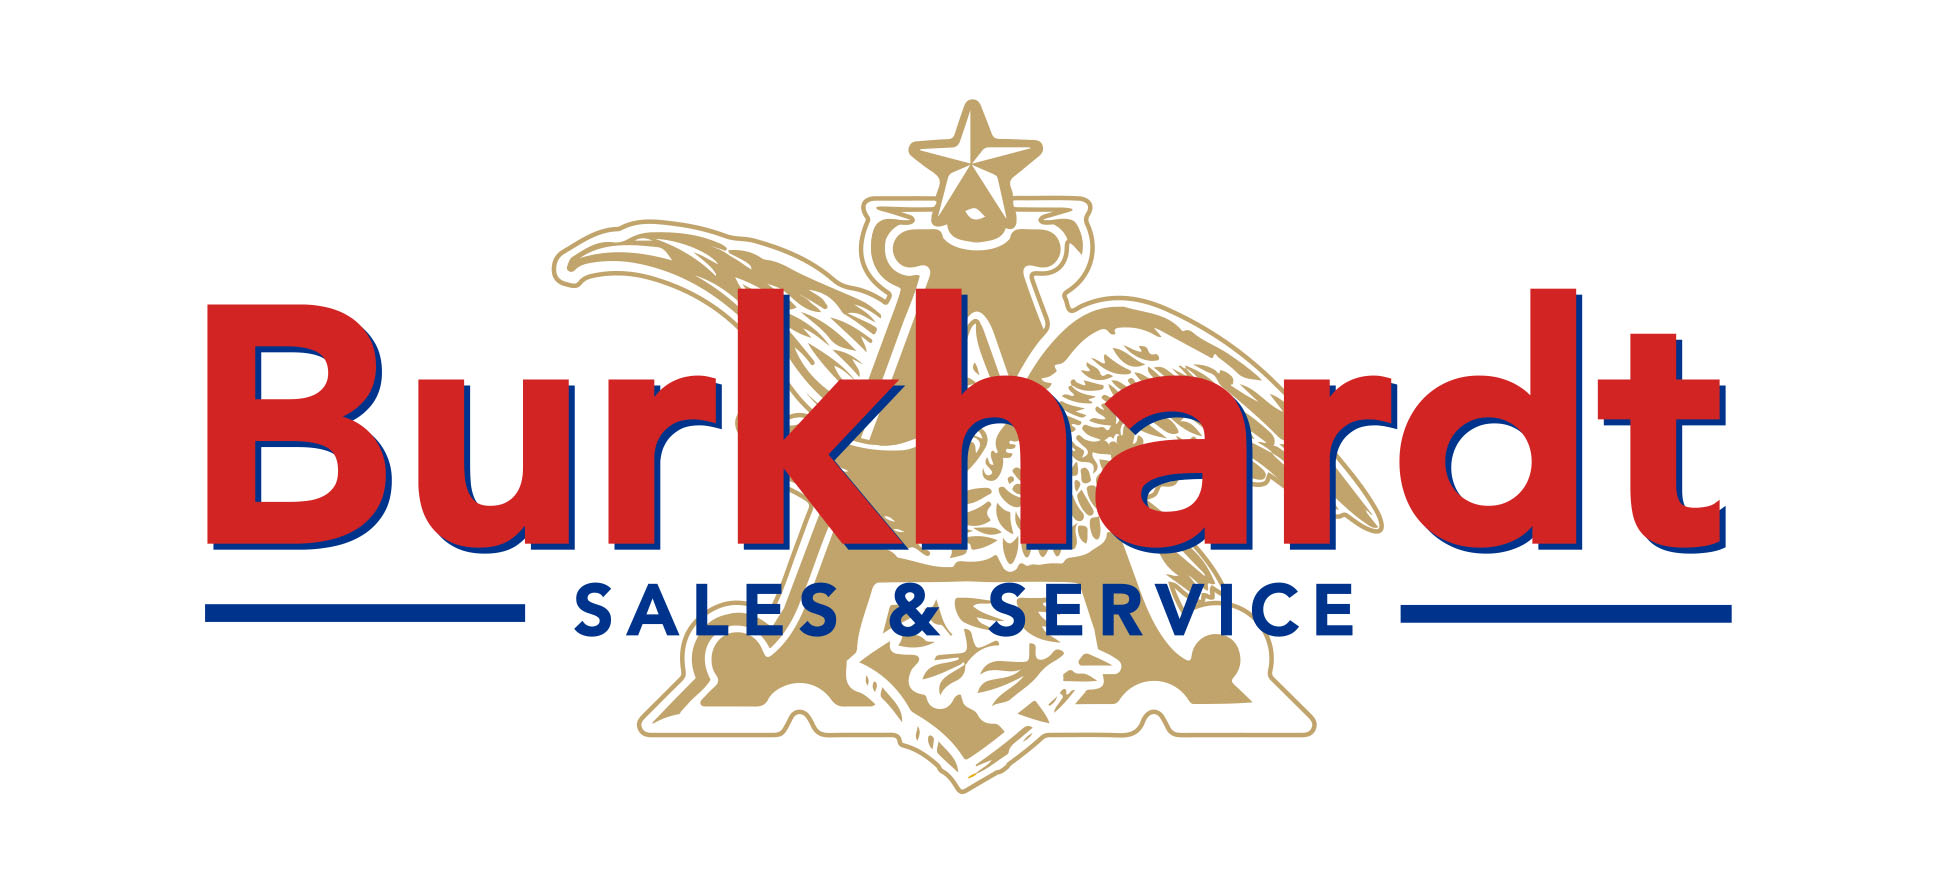 Burkhardt Sales and Service